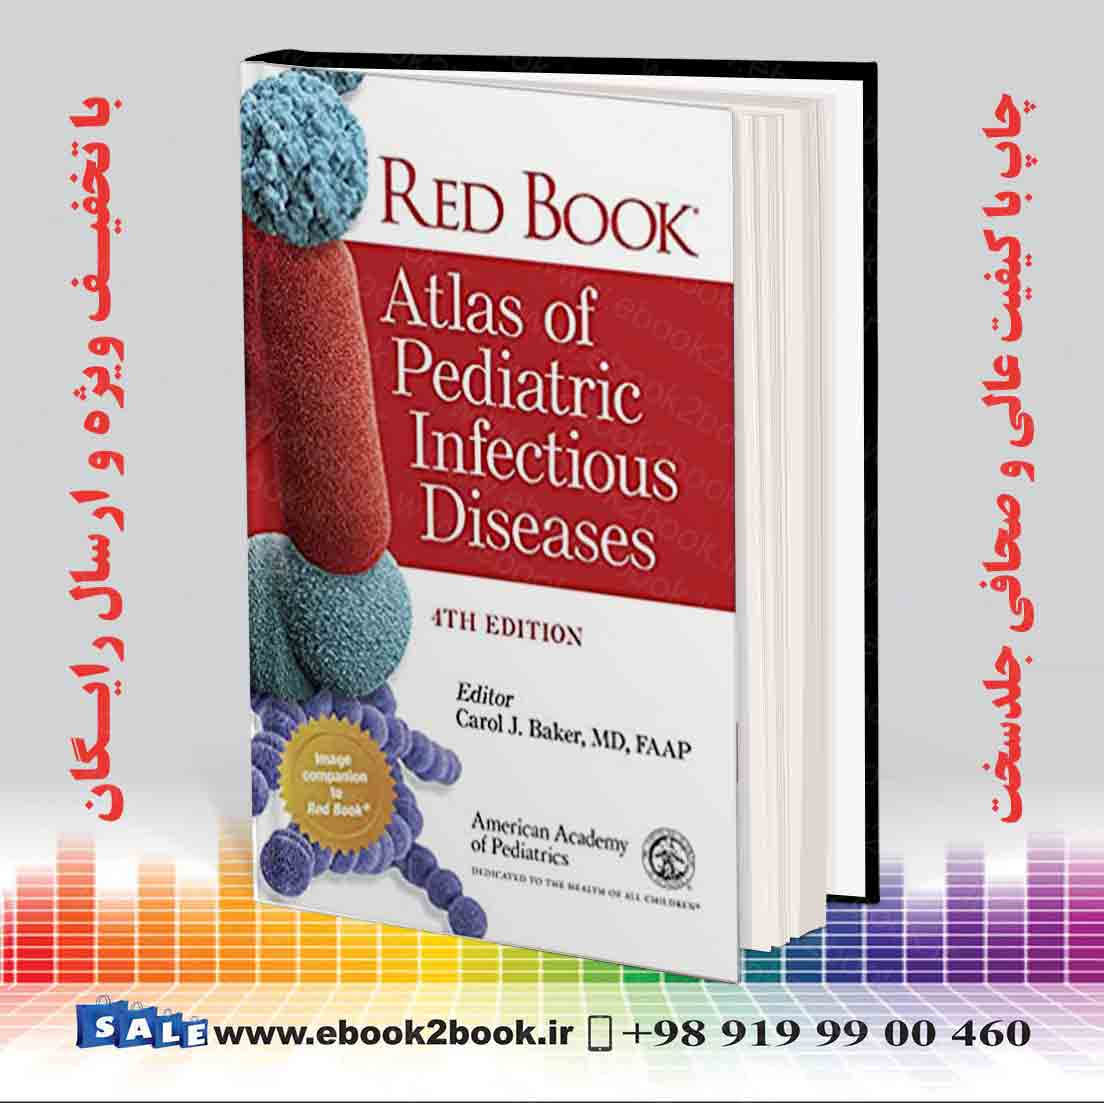 Red Book Atlas of Pediatric Infectious Diseases Fourth Edition